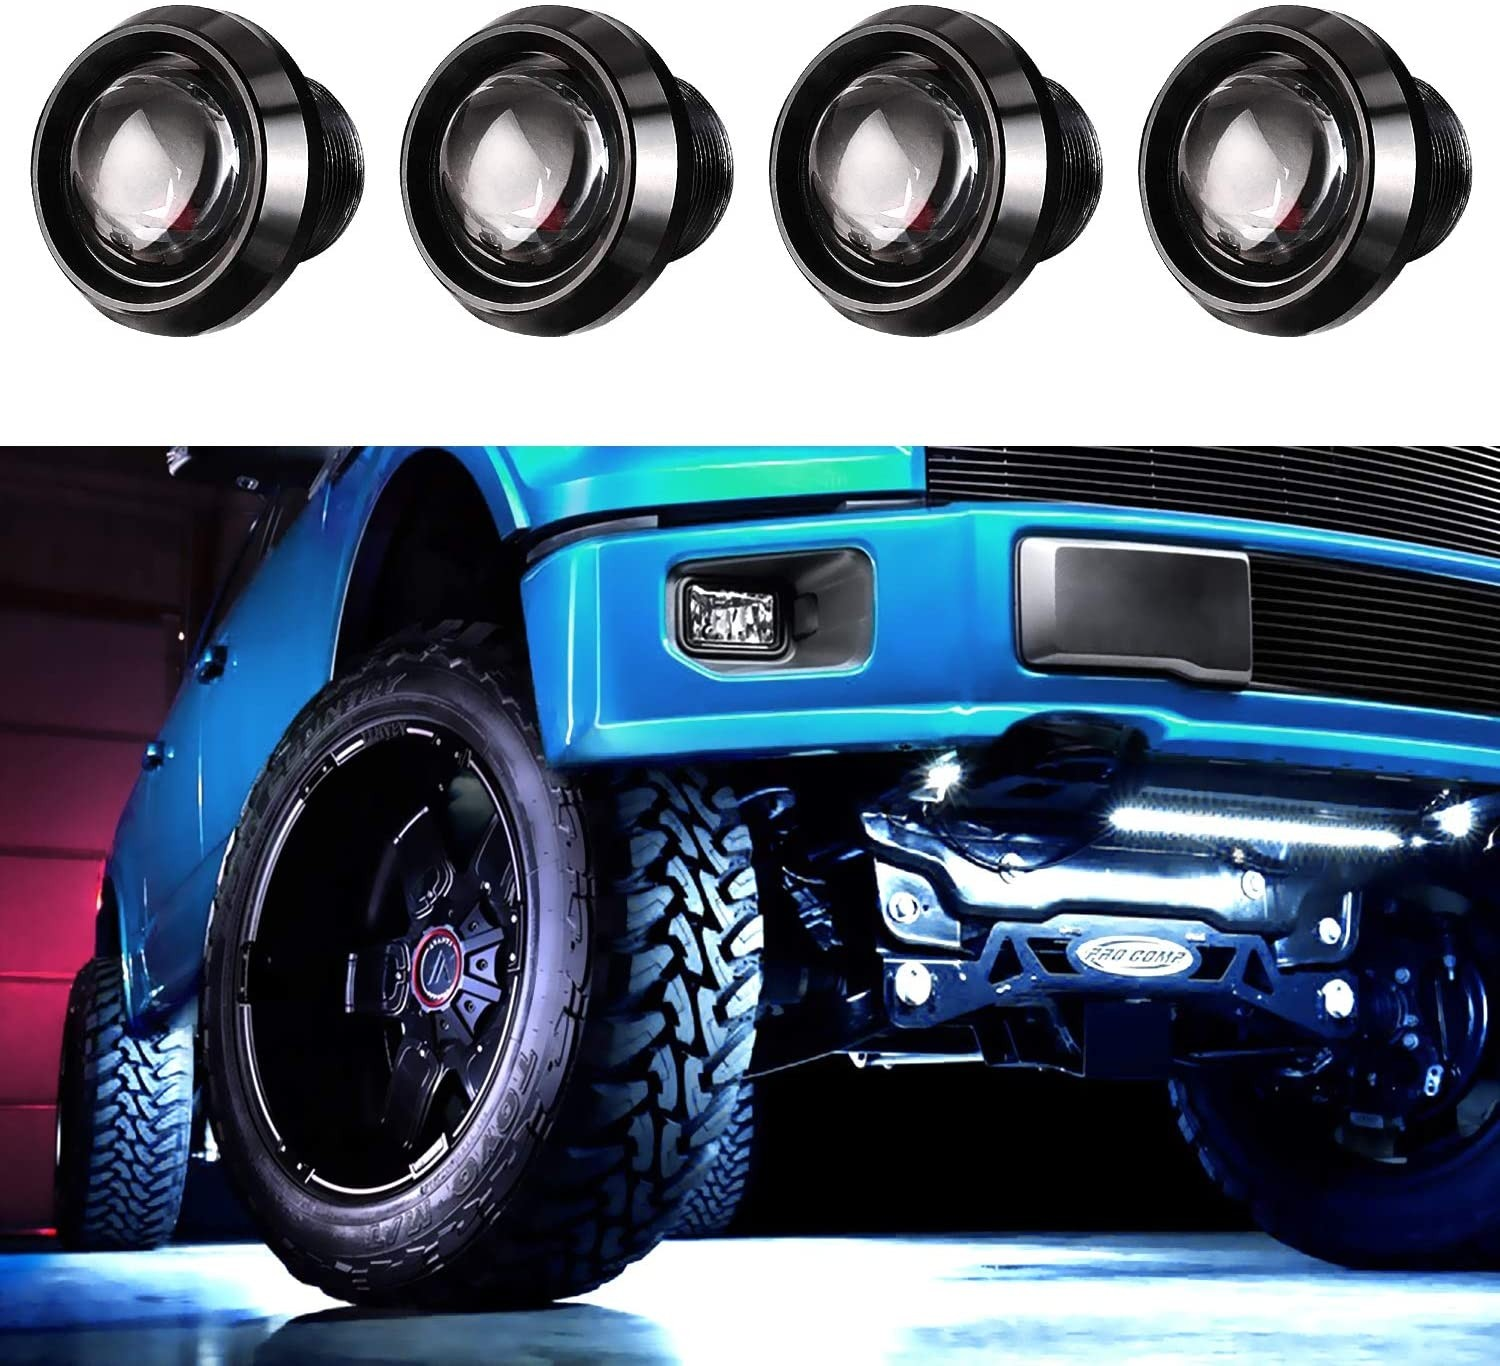 LED Rock Light Kits, OFFROADTOWN 4 Pods LED Neon Lights Underglow Trail Rig Lamp Waterproof Courtesy Light for Jeep Car Off Road Truck SUV UTV ATV Boat - White